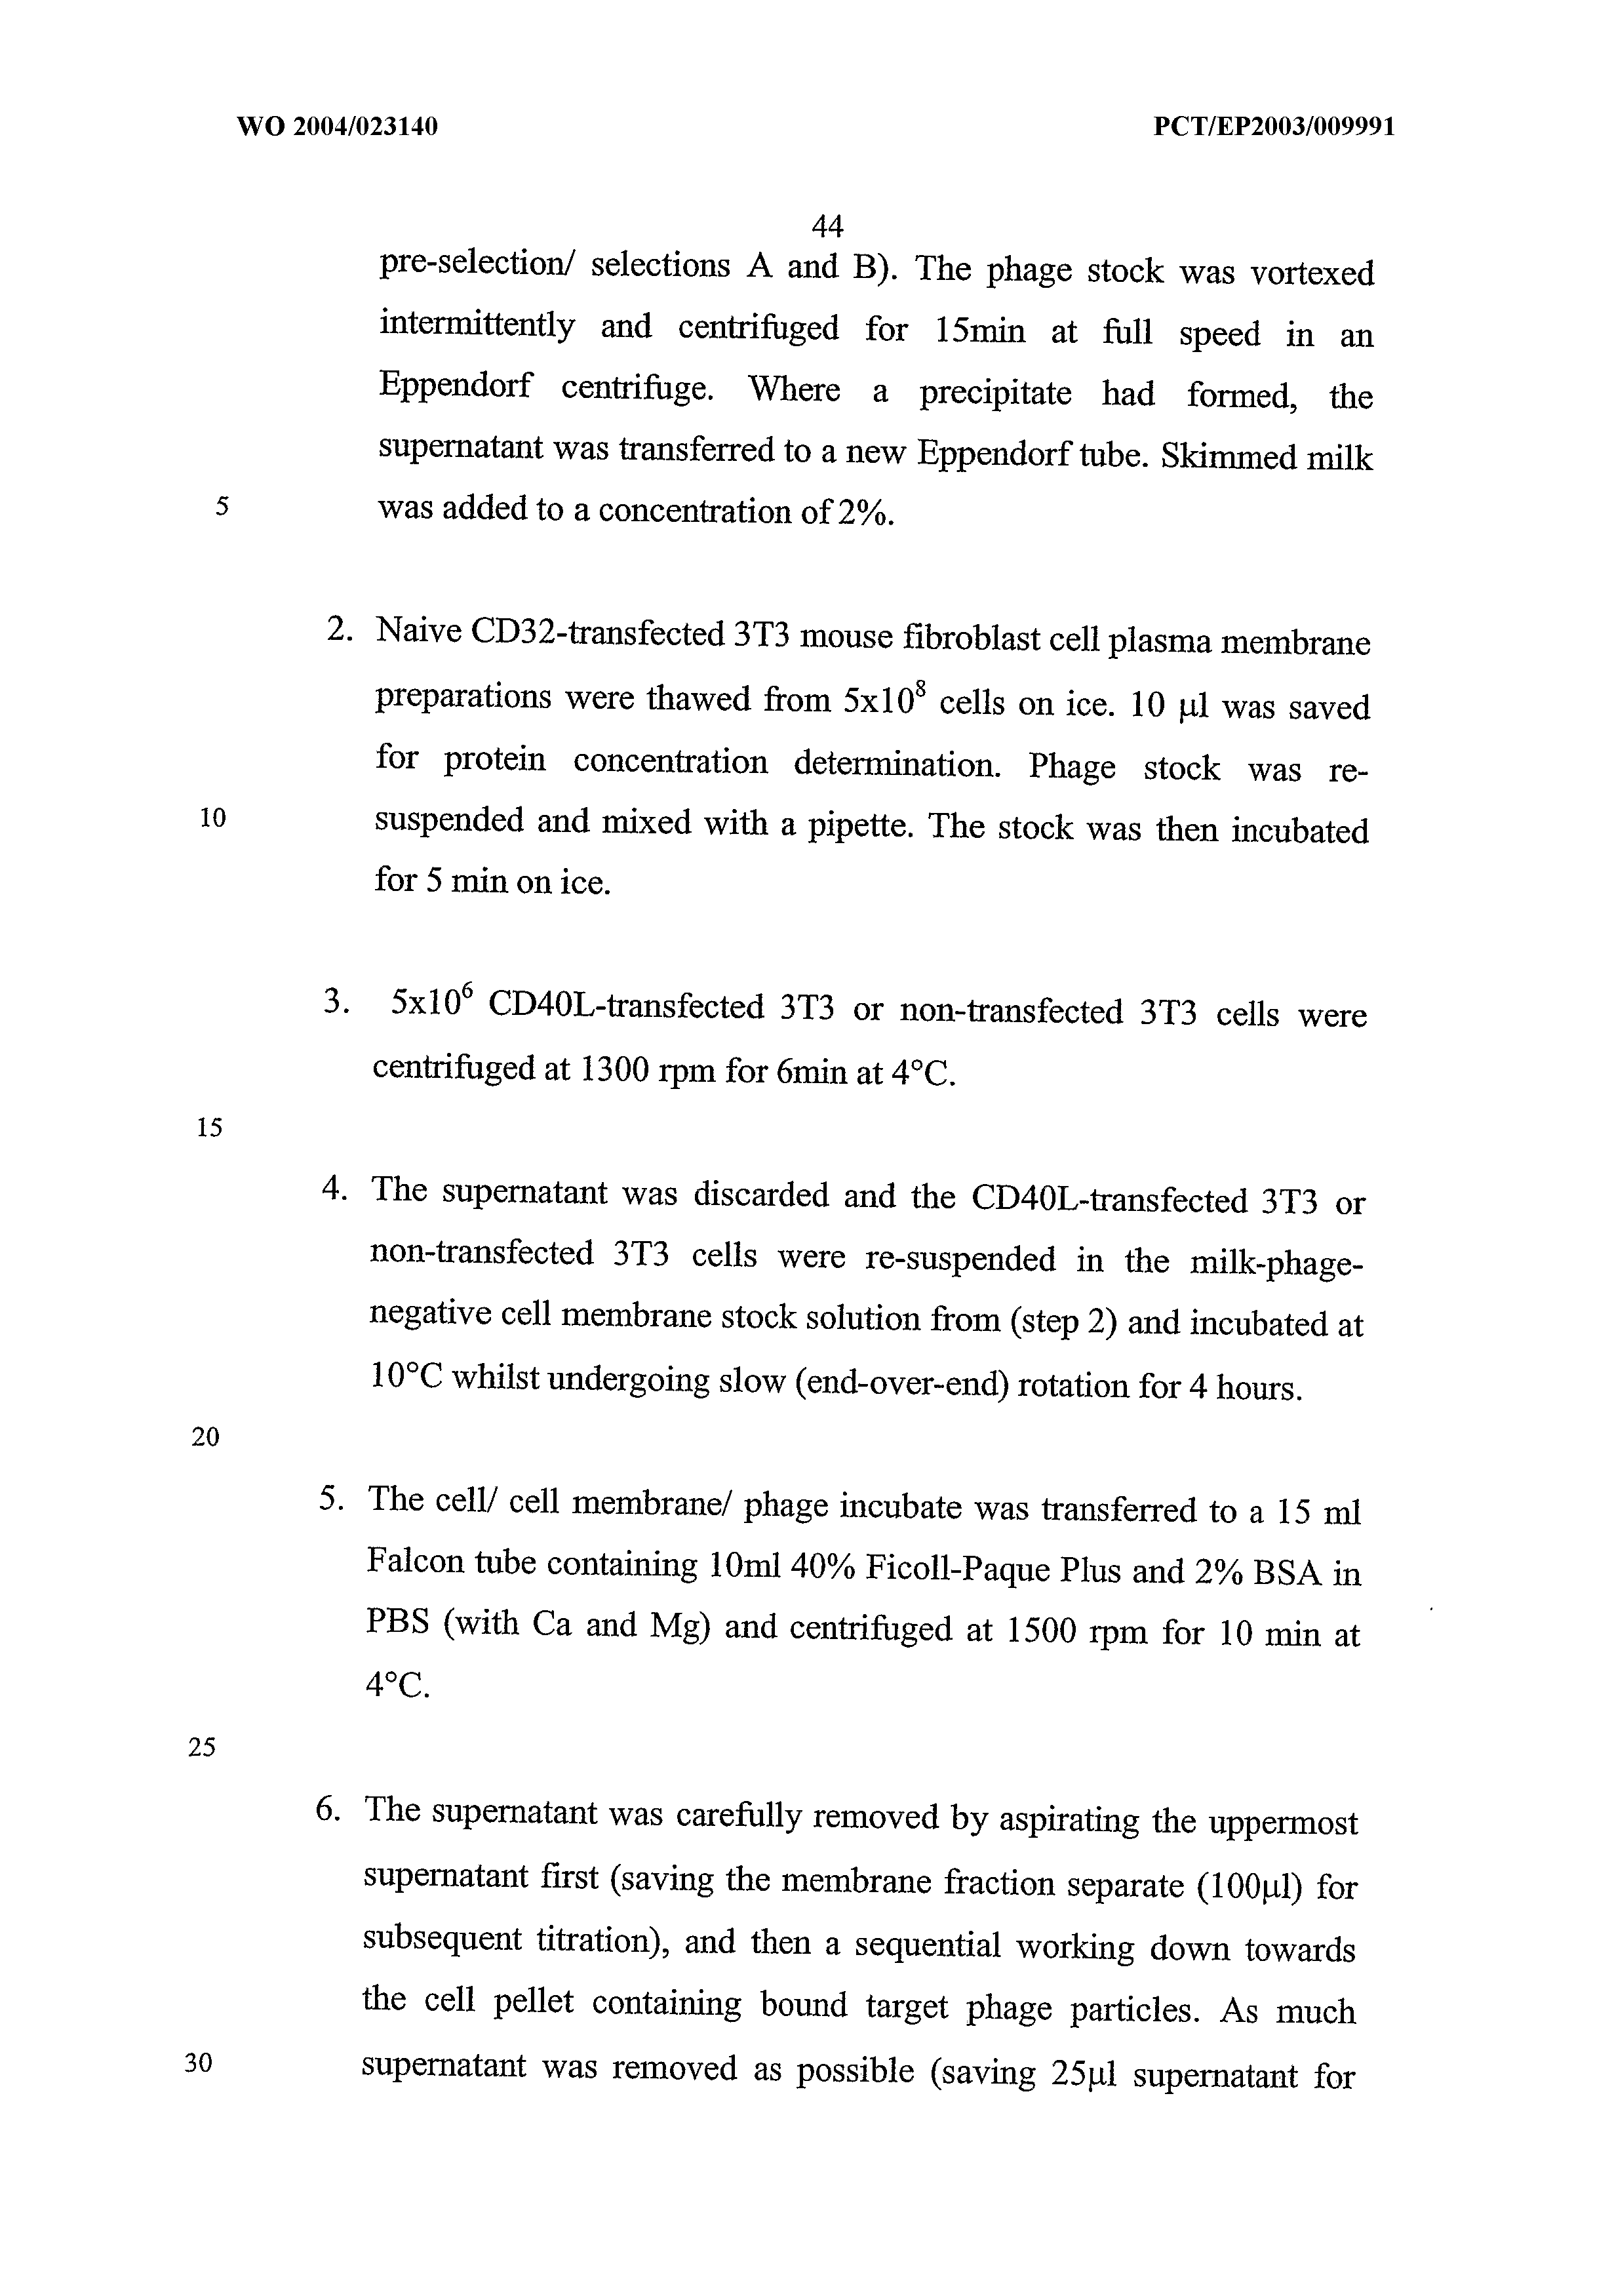 WO 2004/023140 A1 - Method For Screening Anti-ligand Libraries For